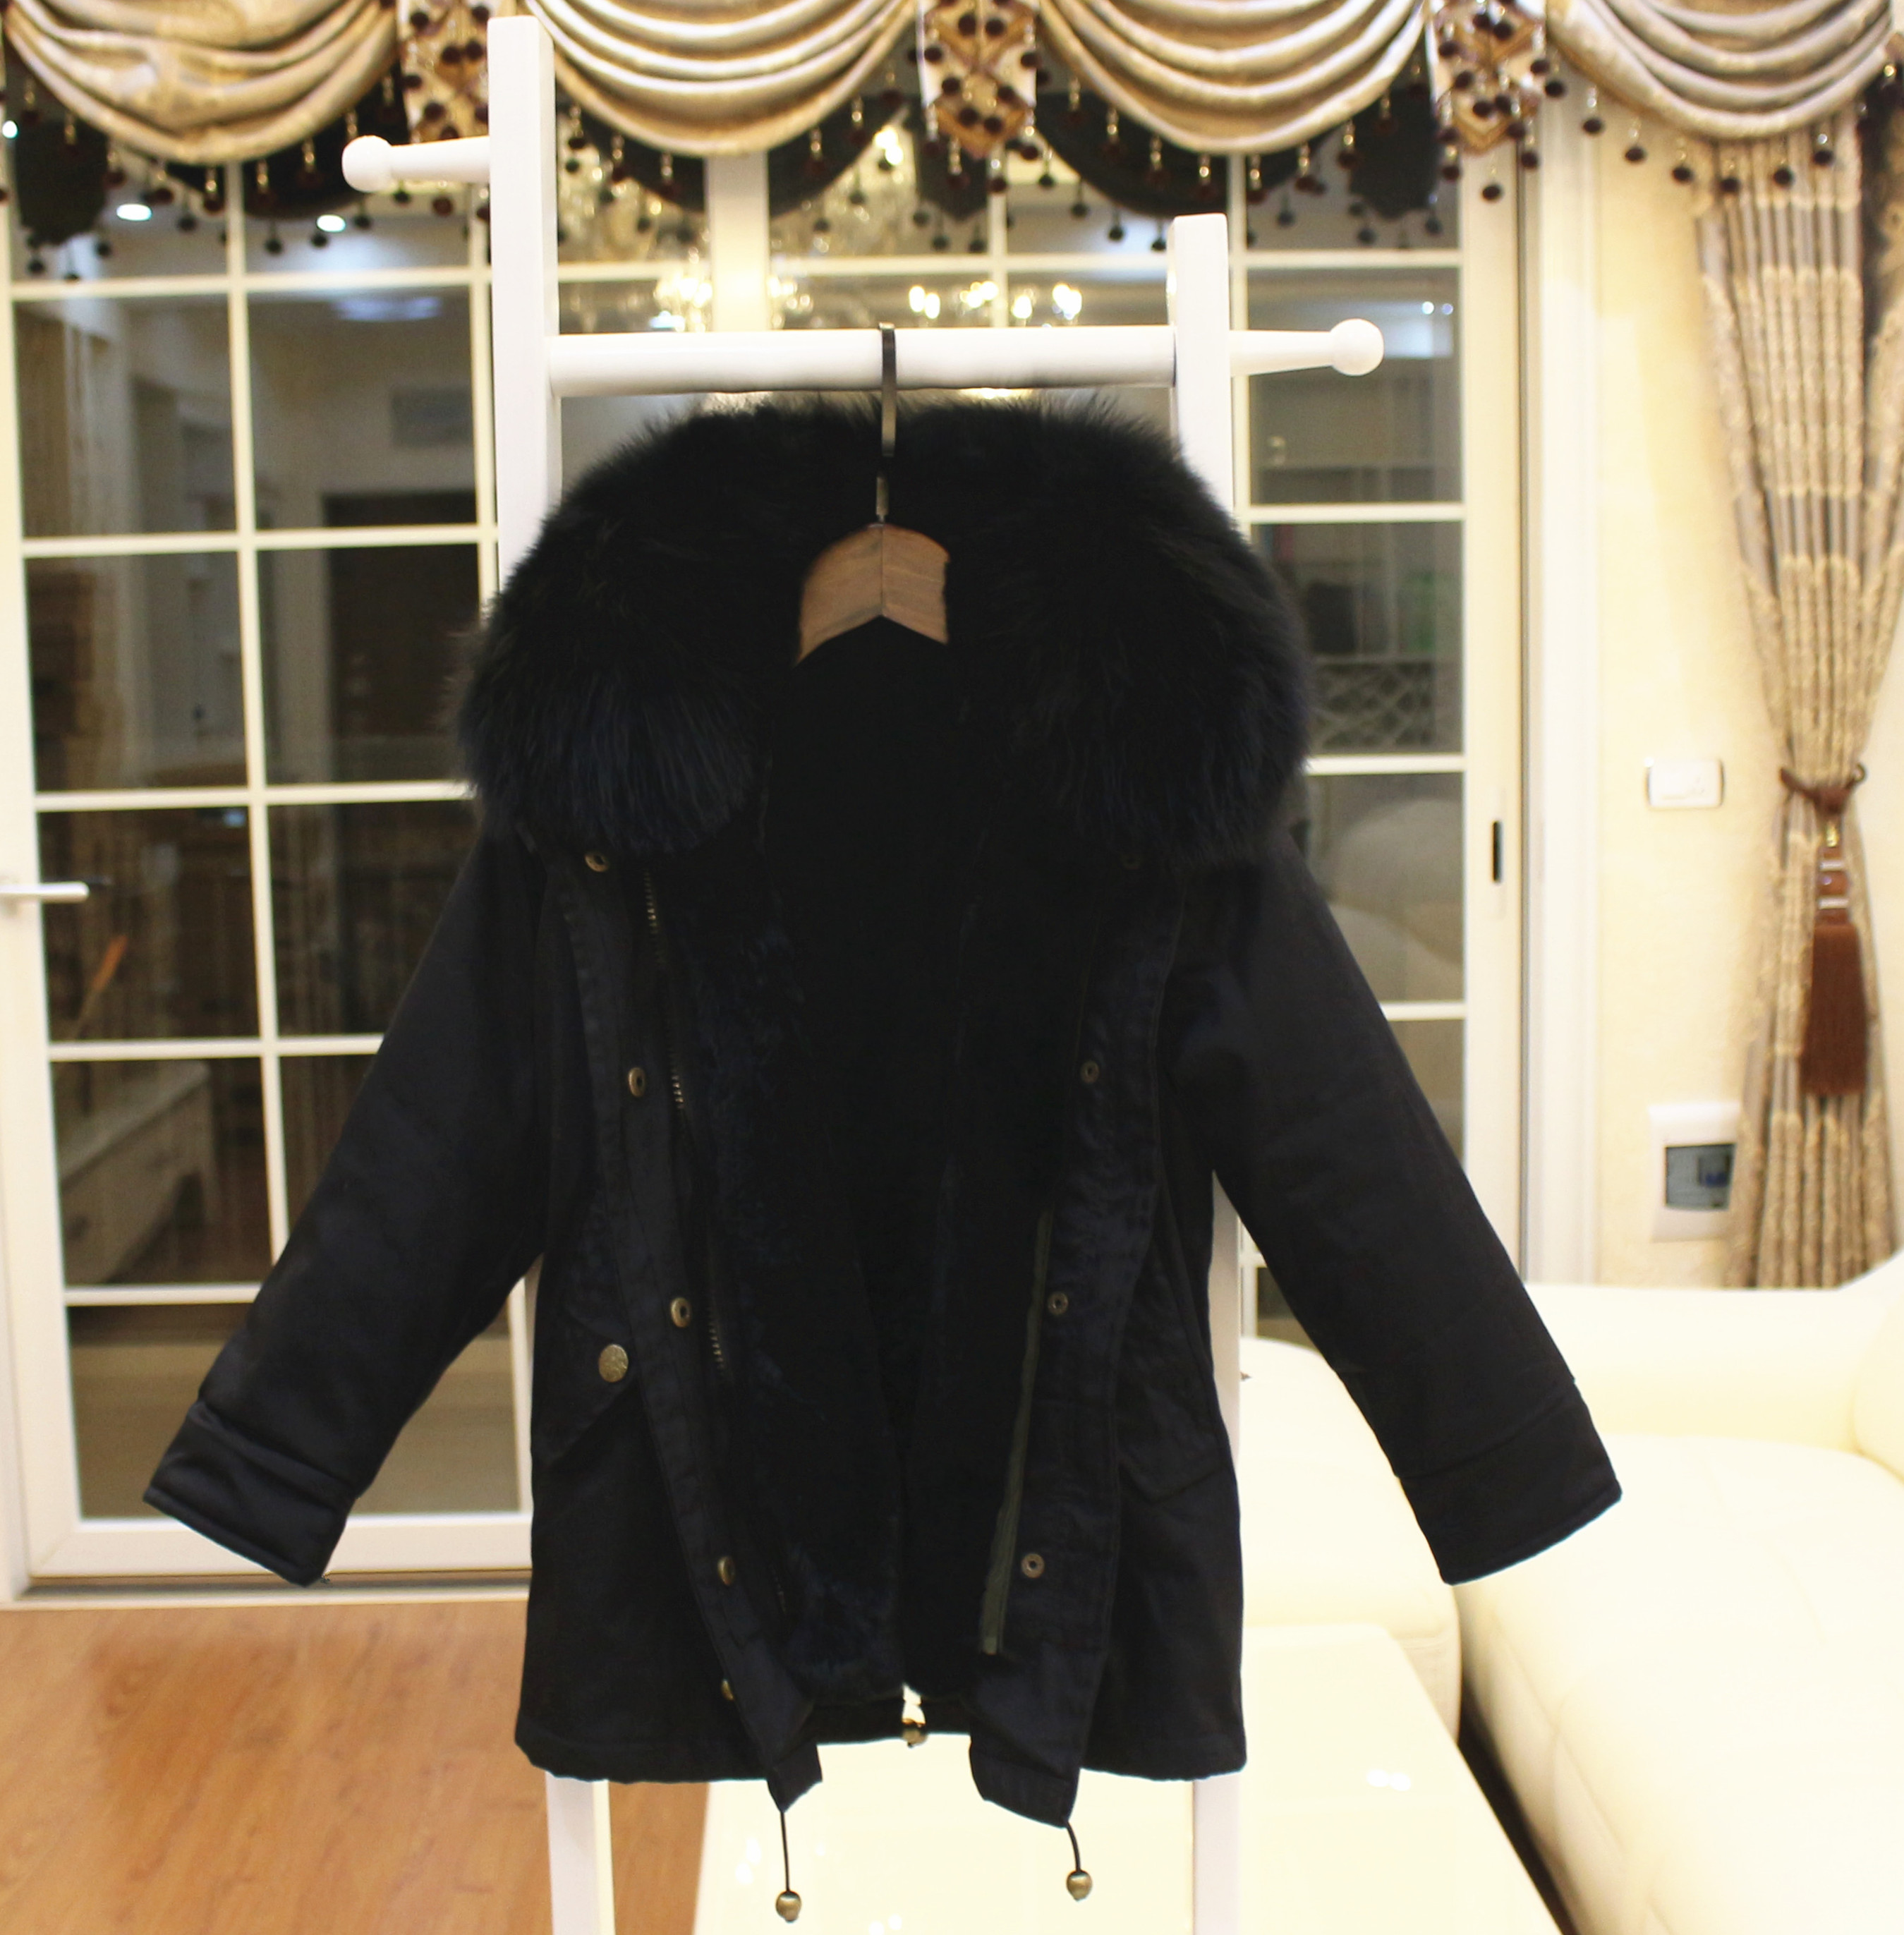 Color classification: Black casing liner black fur collar